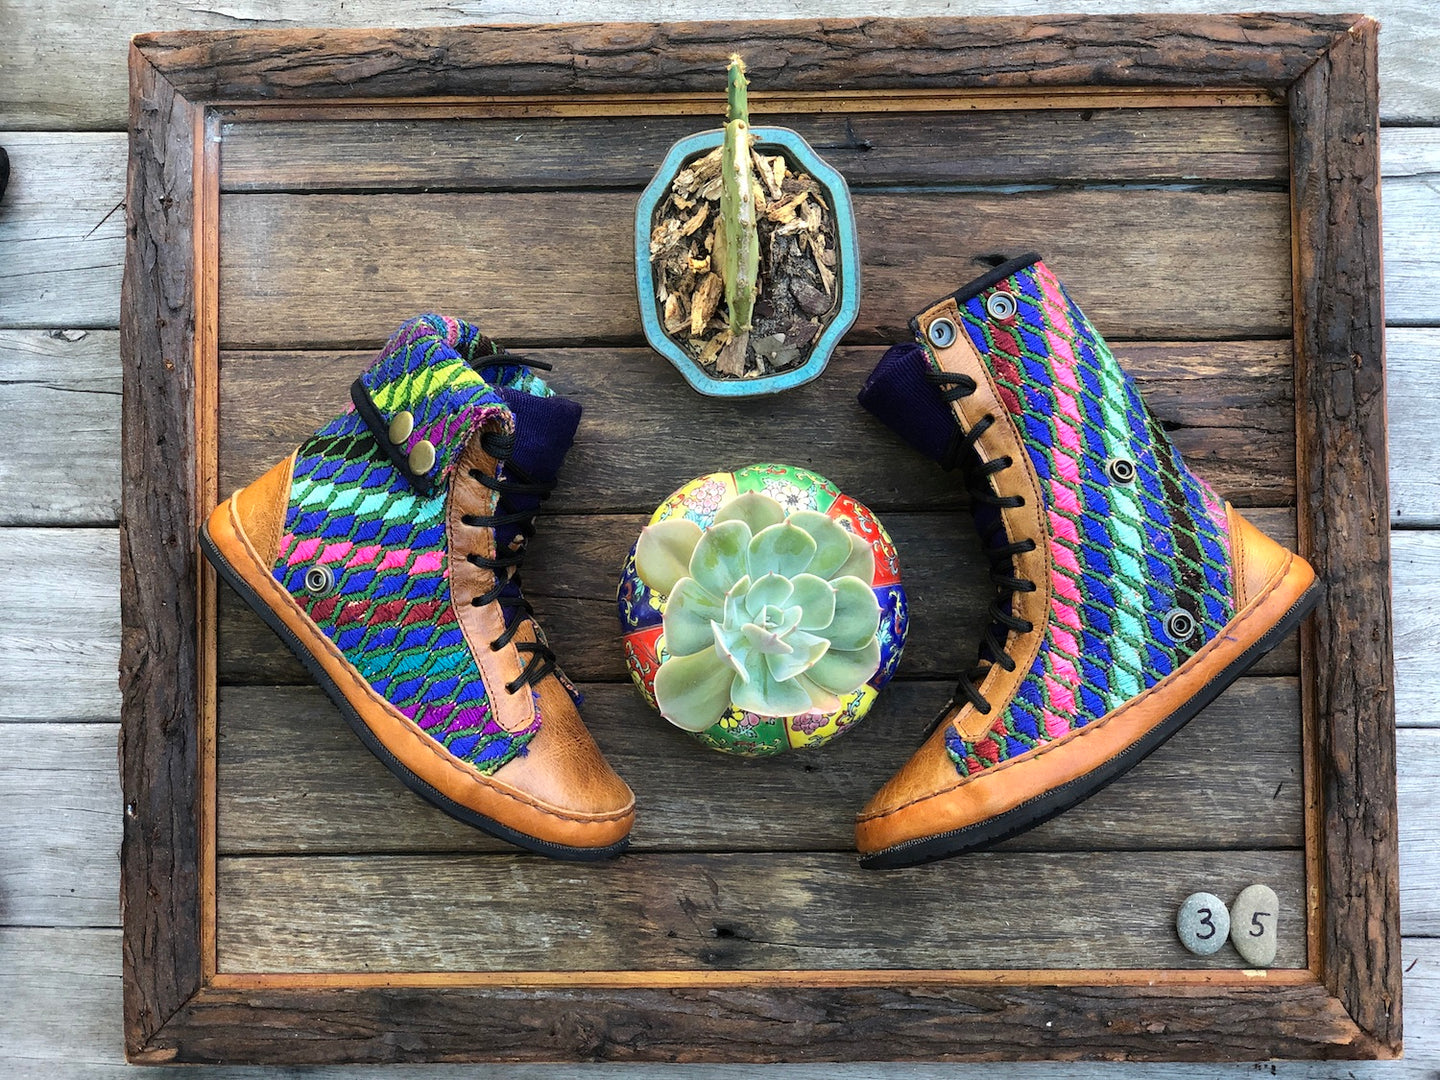 Size 35 - Fold down Desert Boots - Rainbow Scales